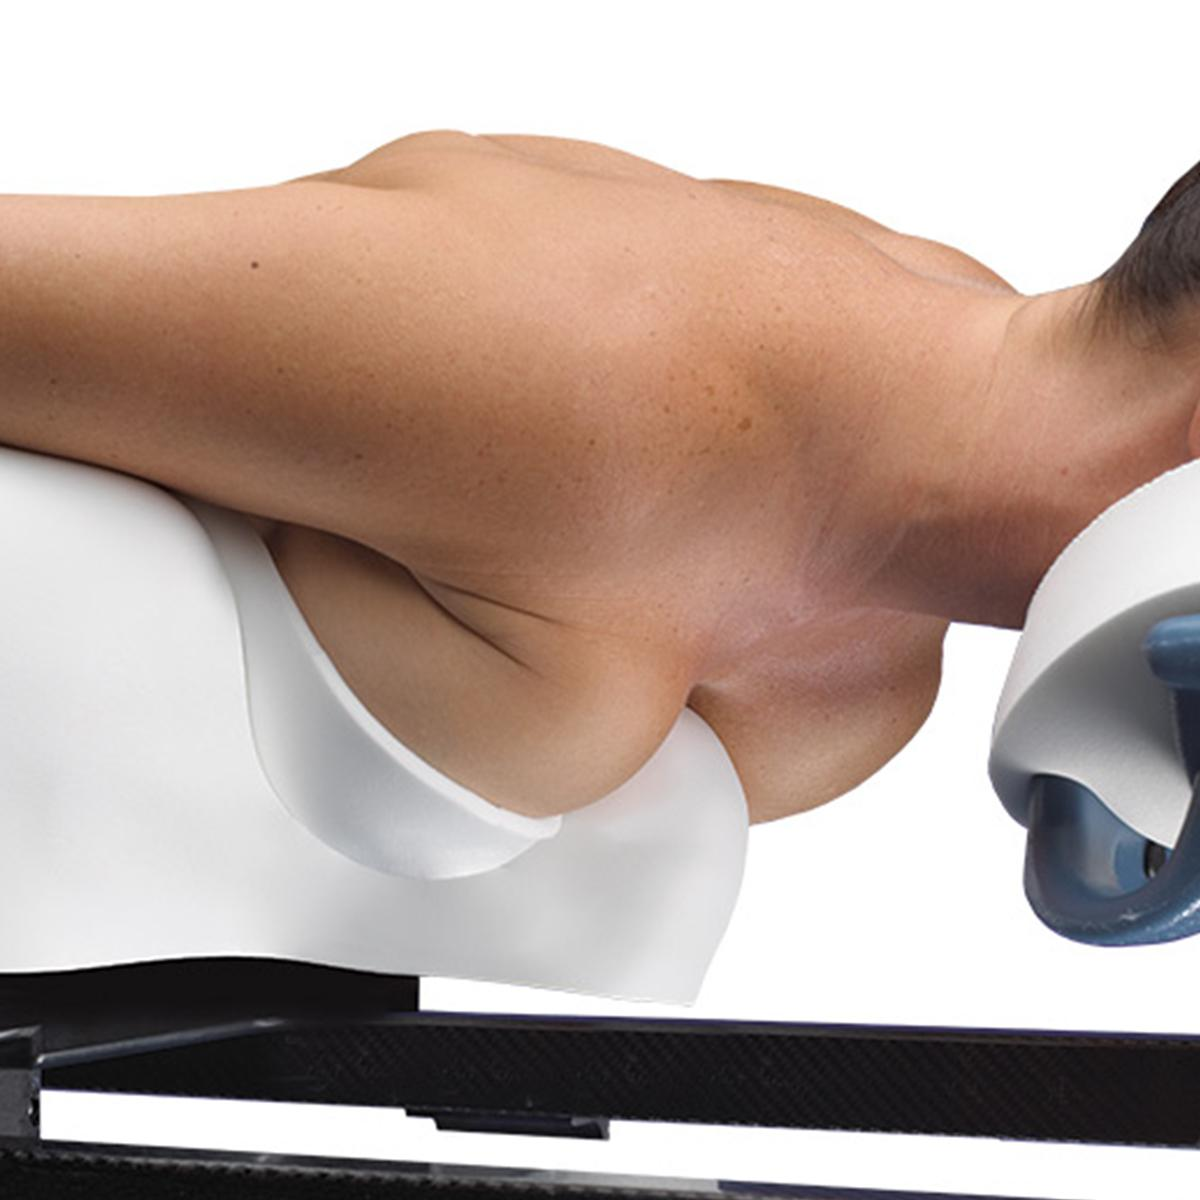 Contour™ Breast Positioner in use, patient prone